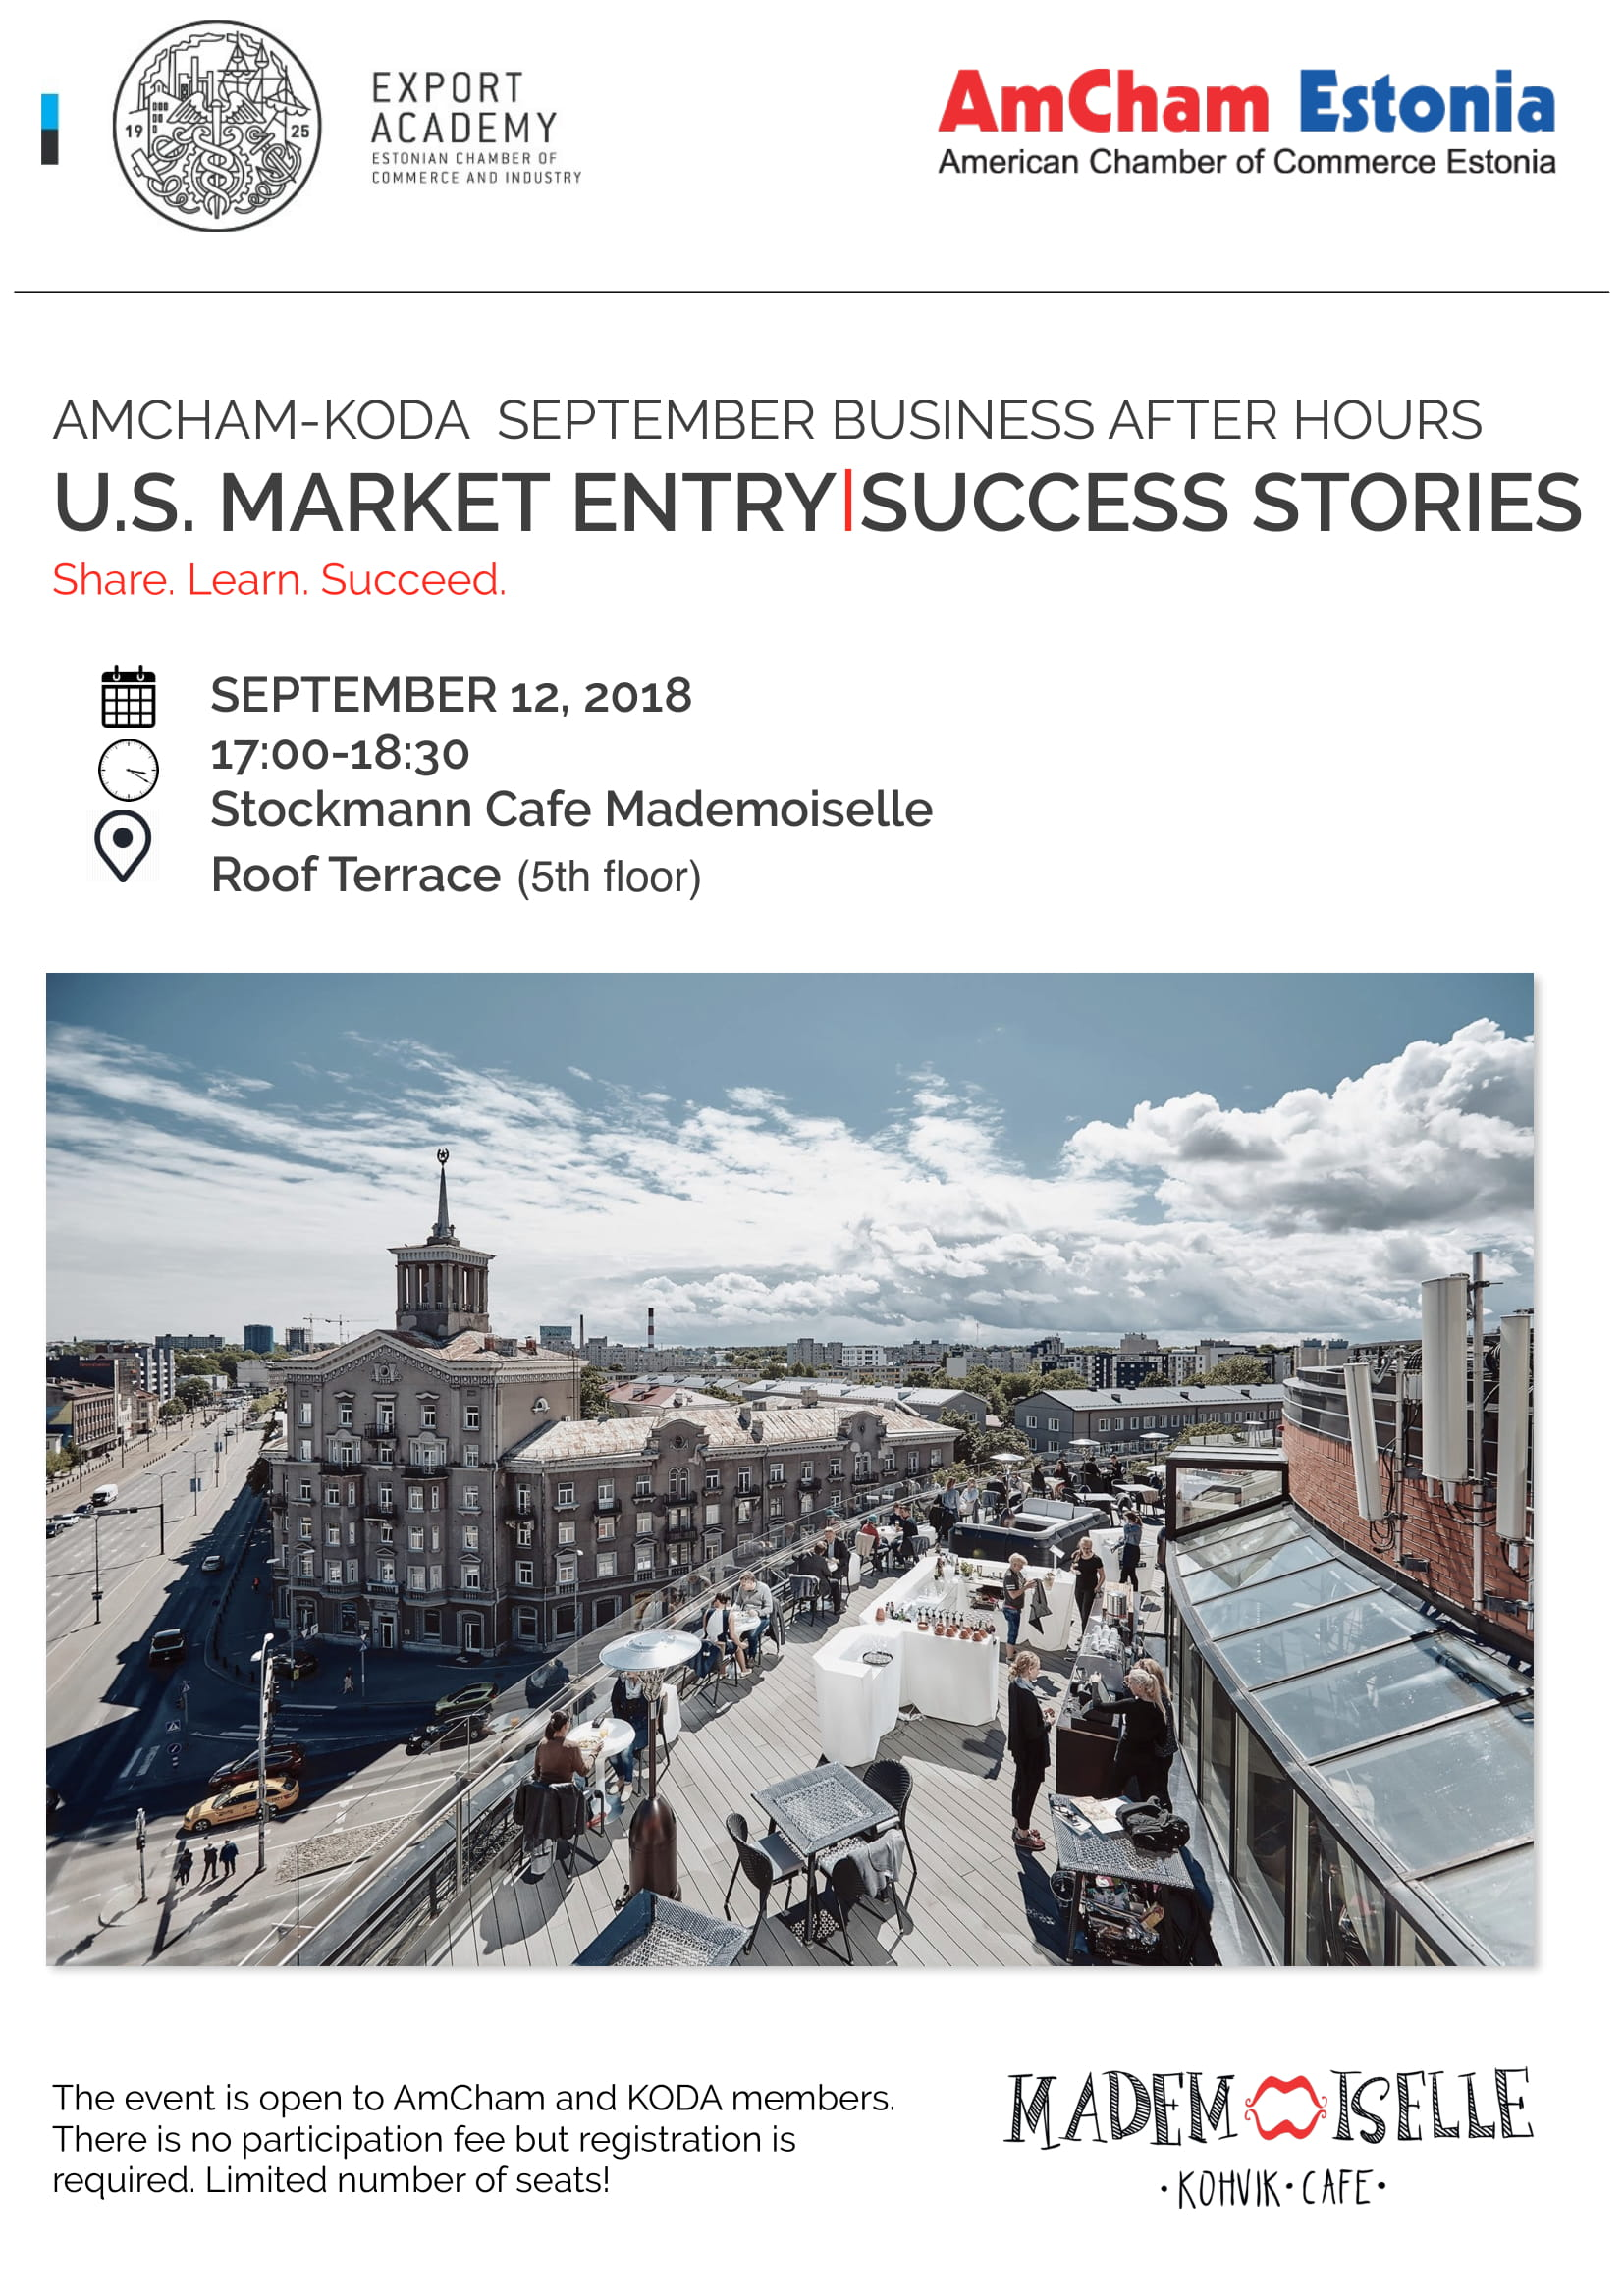 U.S. MARKET ENTRYISUCCESS STORIES